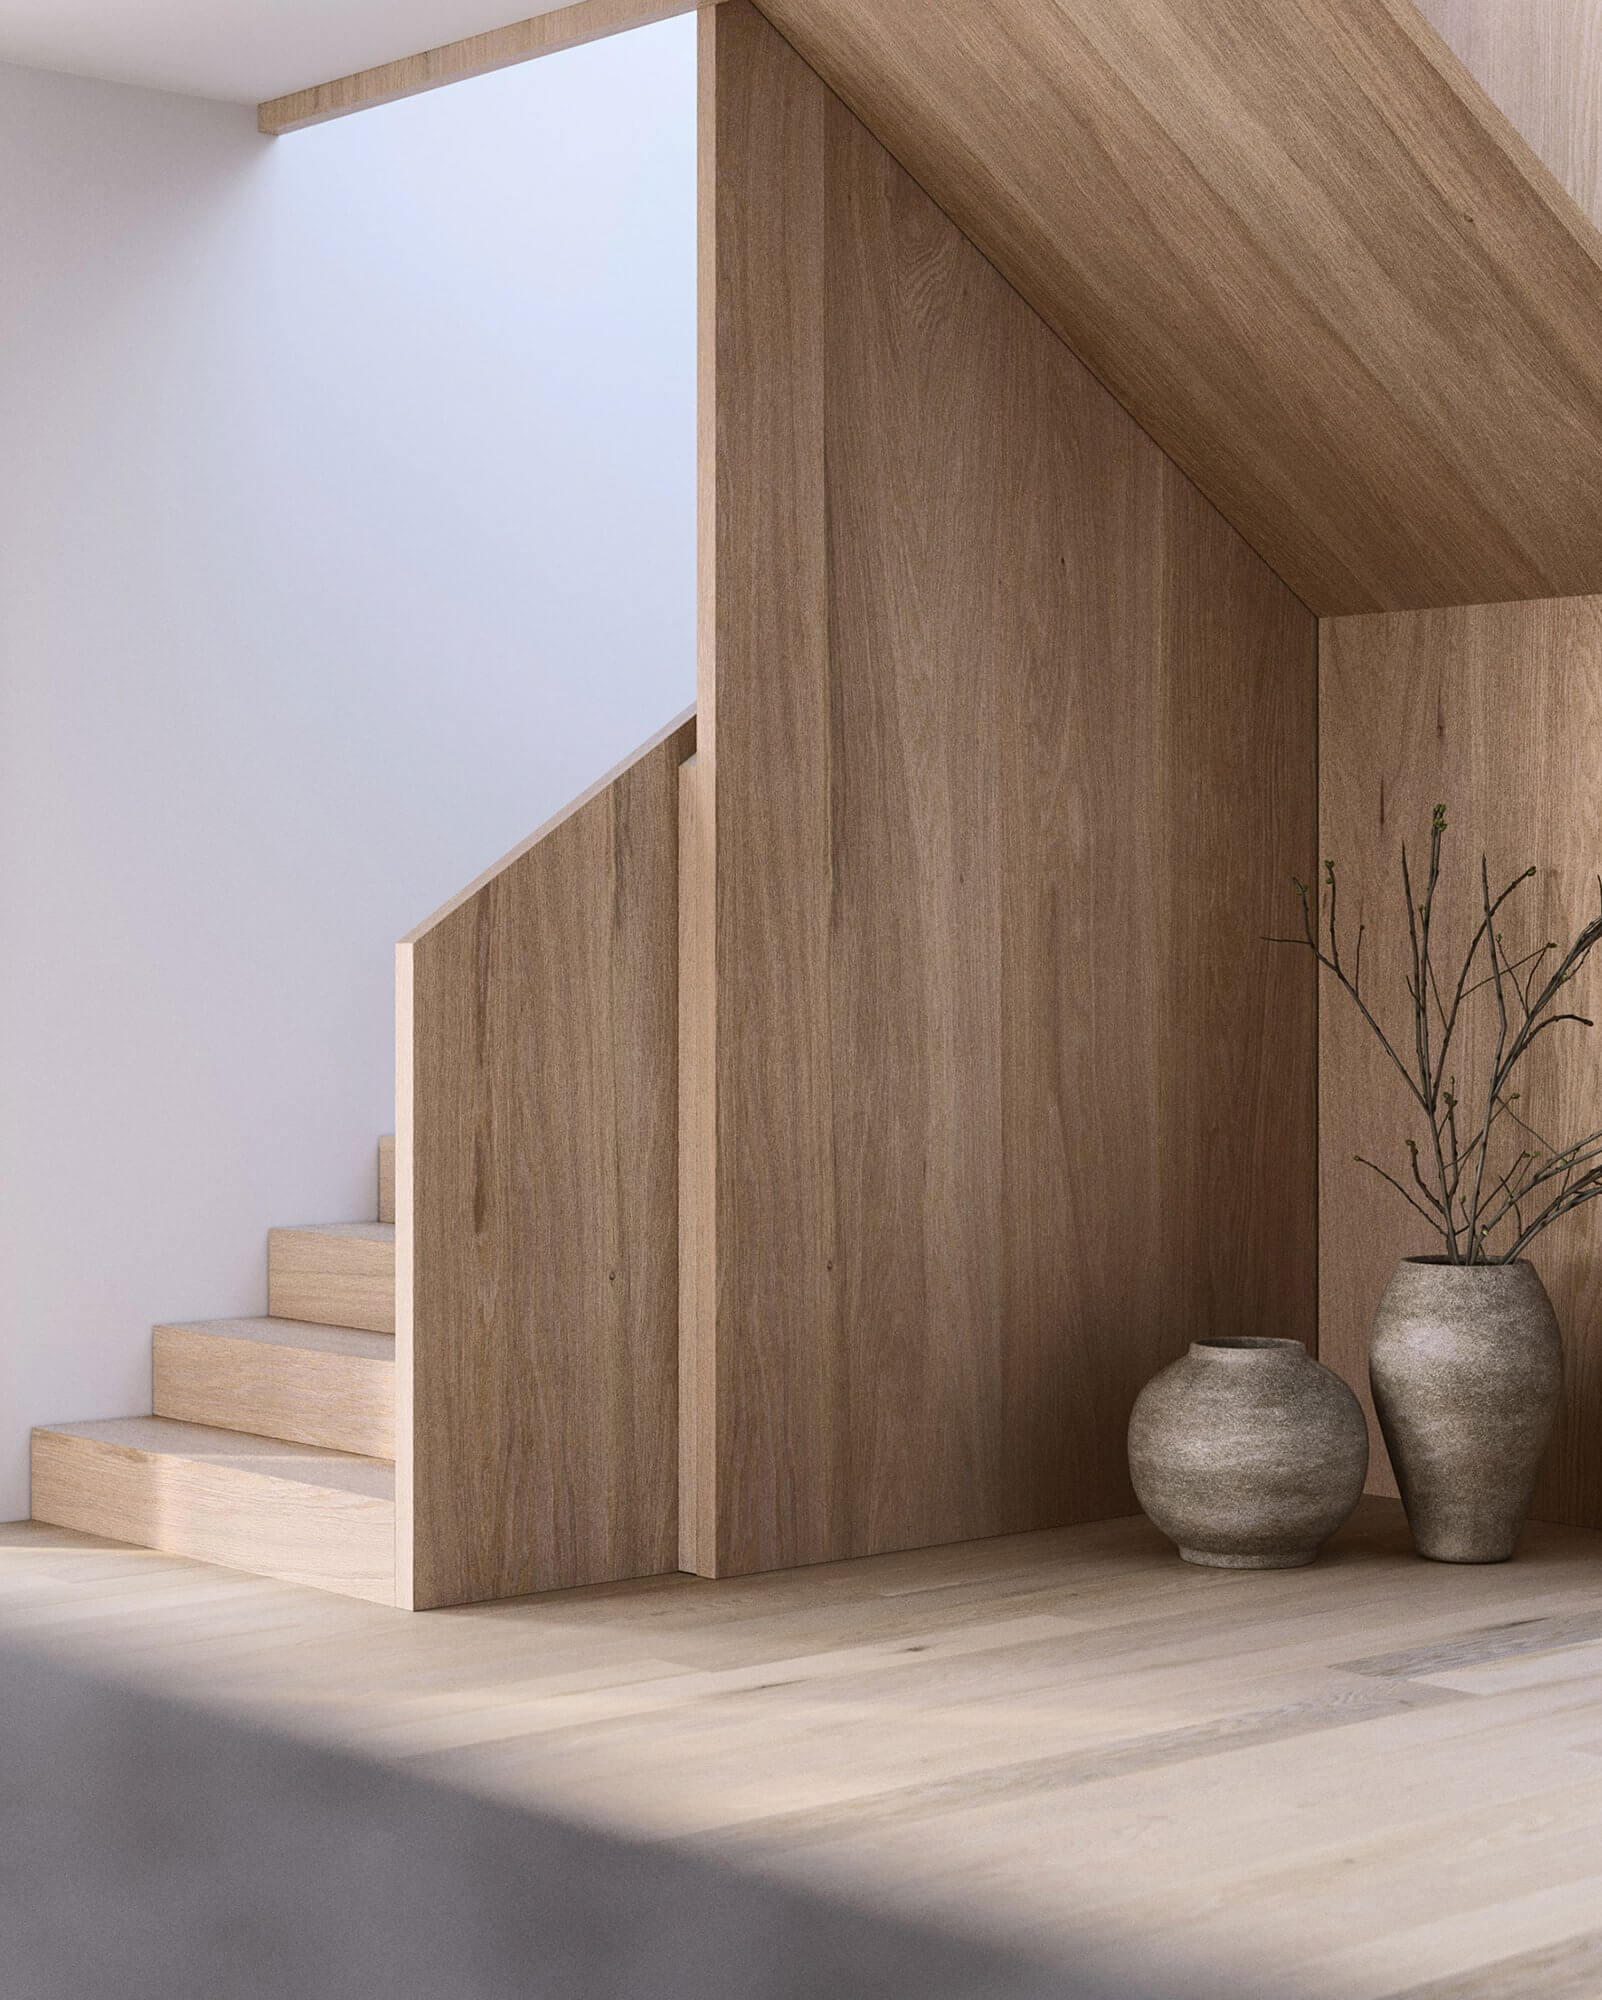 Suprematic Simplicity Apartment living room staircase wood - cgi visualization